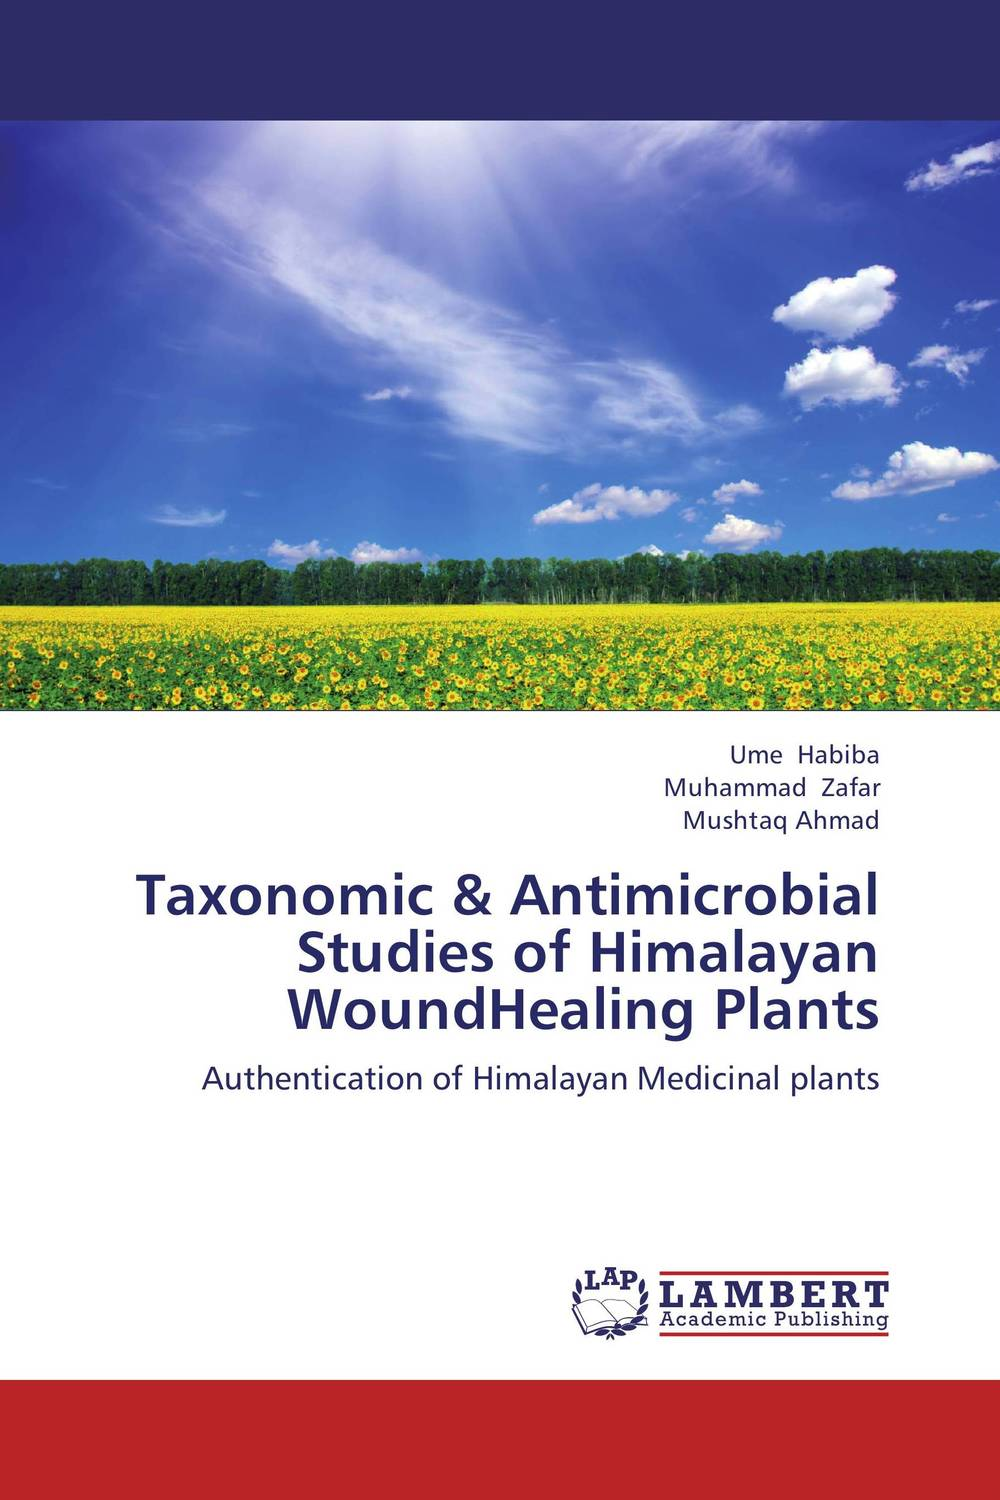 Taxonomic & Antimicrobial Studies of Himalayan WoundHealing Plants ce emc lvd fcc ozonizer for gas treatment in electronic plant